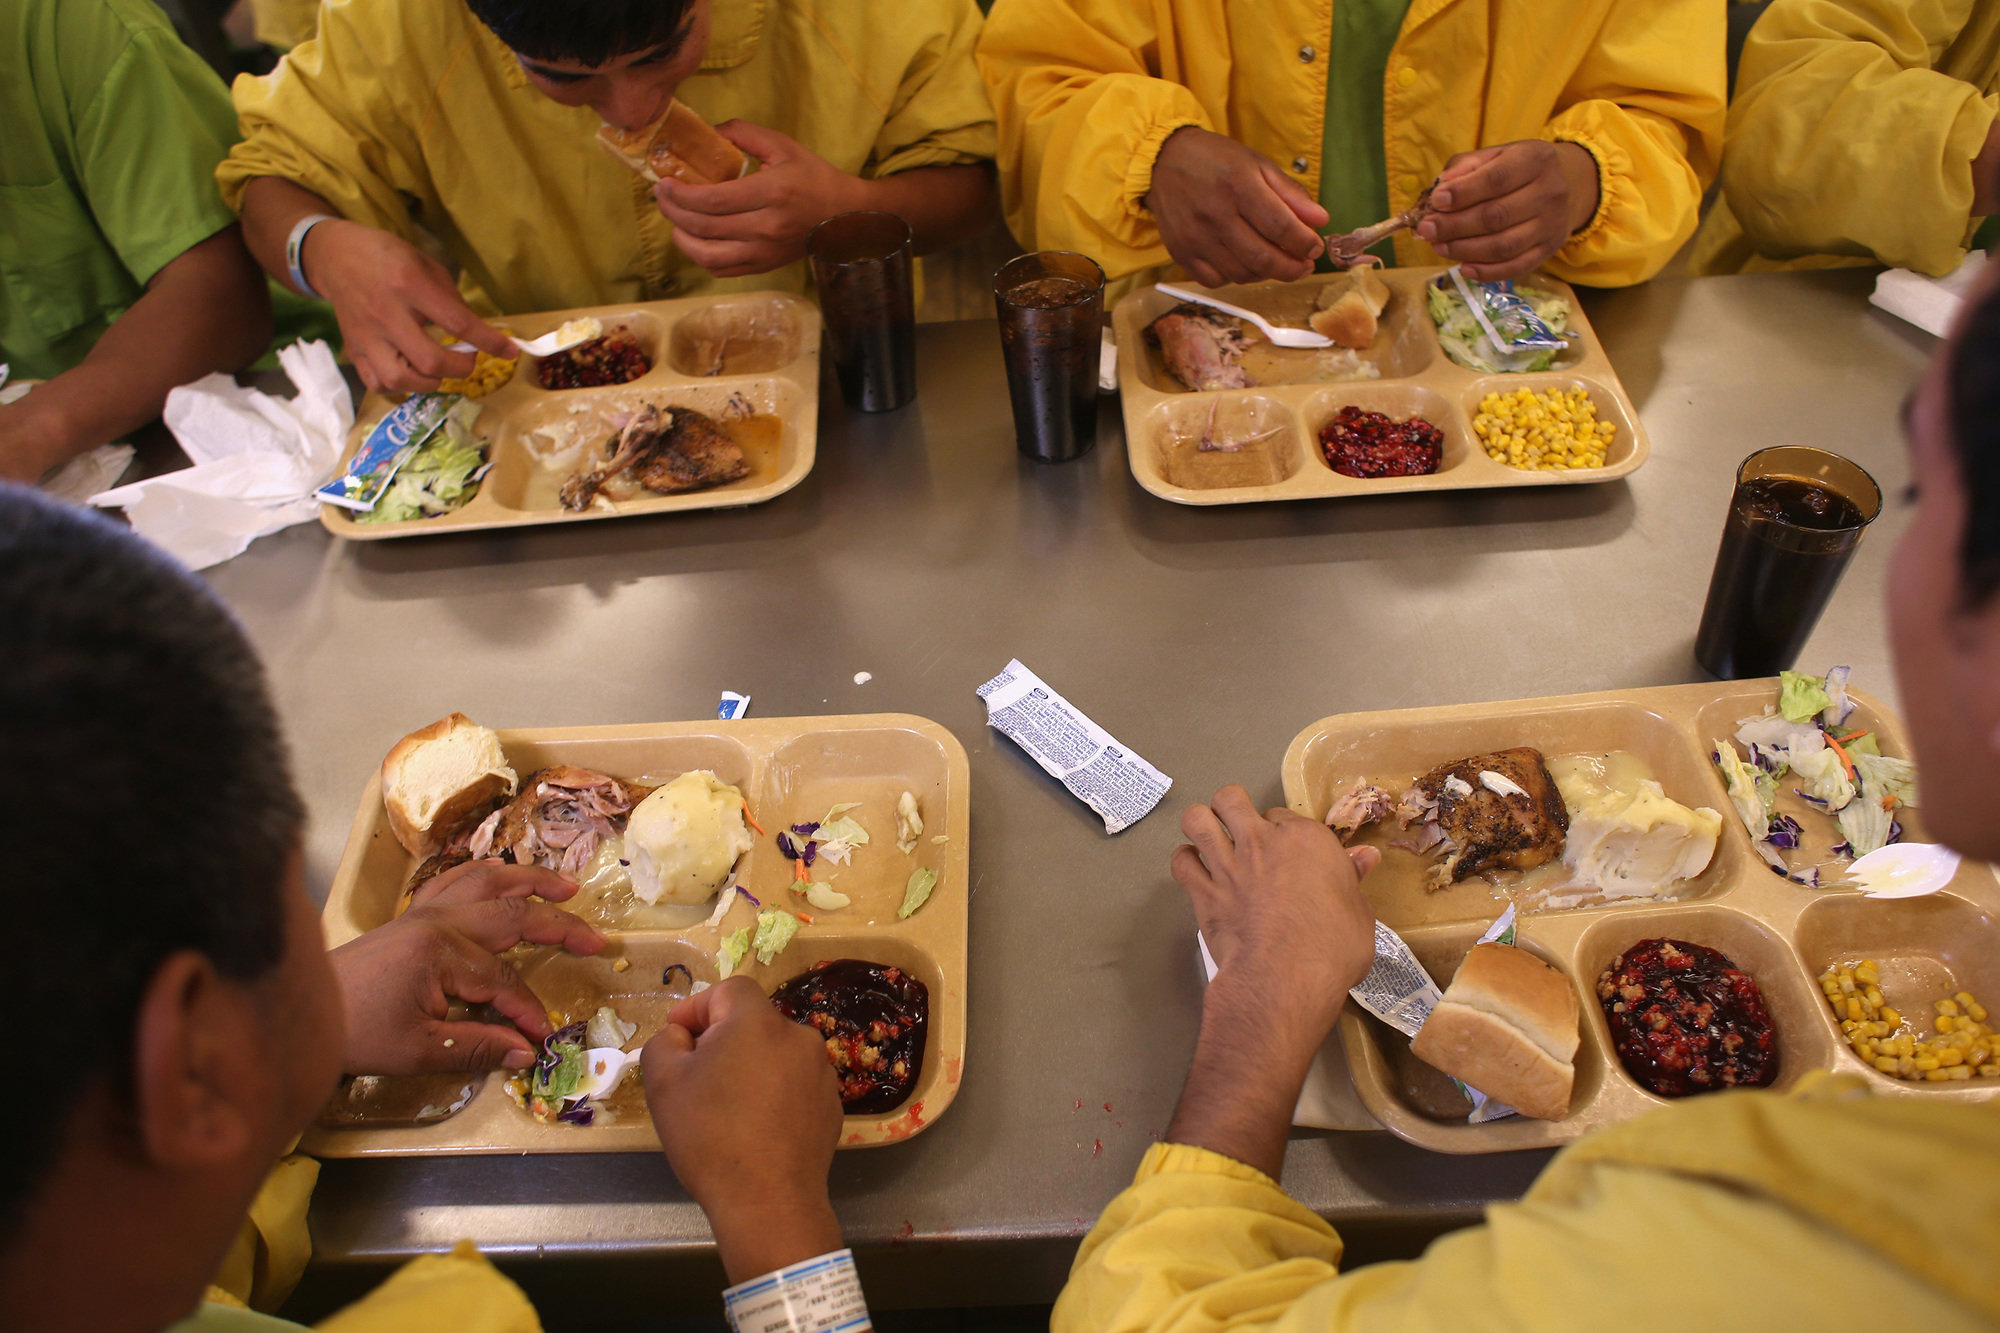 Detainees eat lunch at the Immigration and Customs Enforcement detention facility in Florence, Ariz., on Feb. 28, 2013.